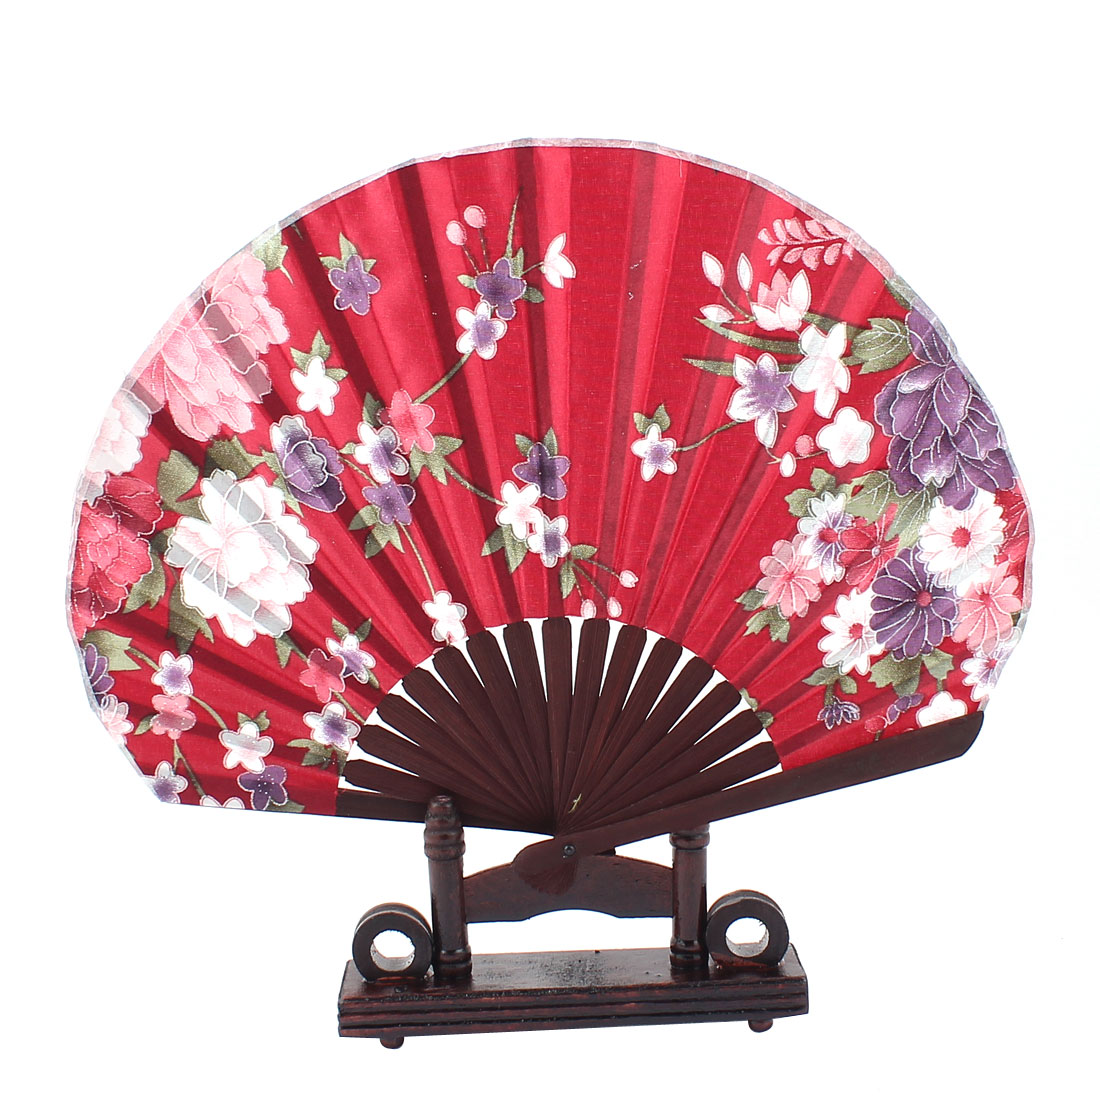 Chinese Wedding Party Foral Wood Folding Hand Fan Coffee Color Burgundy w Holder